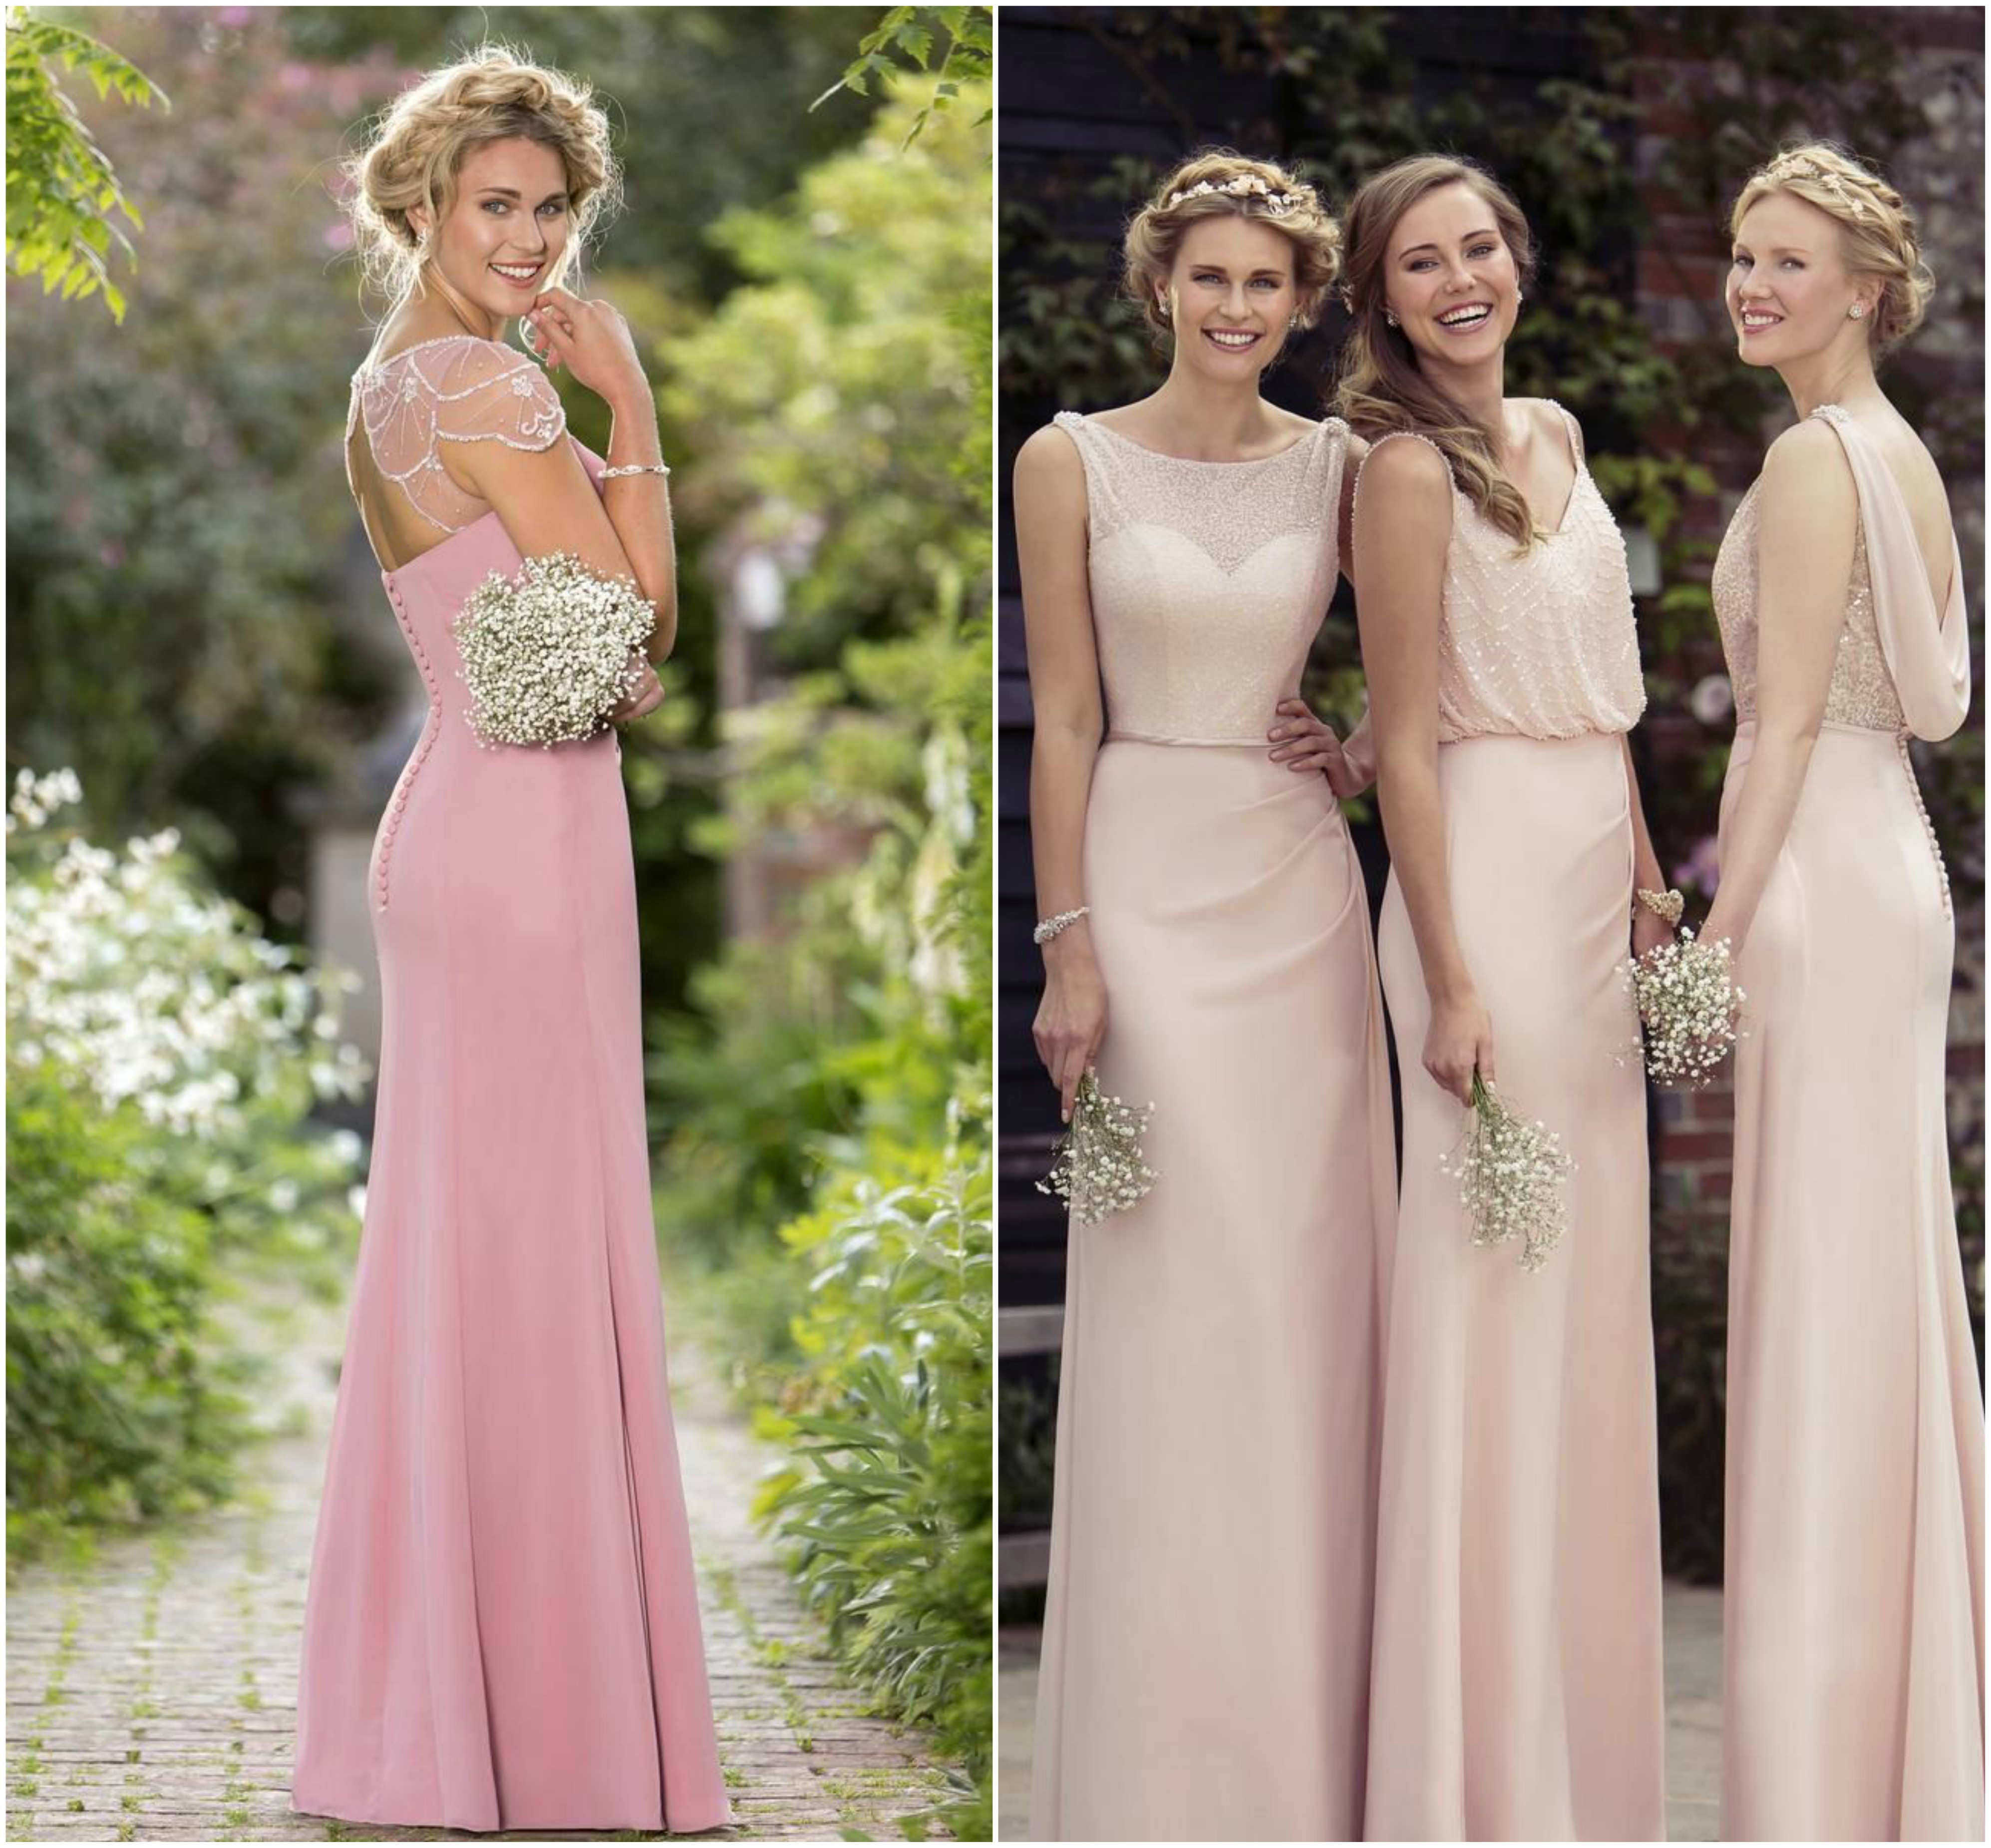 2018 Bridesmaids Trends Pearls And Lace Wedding Dresses